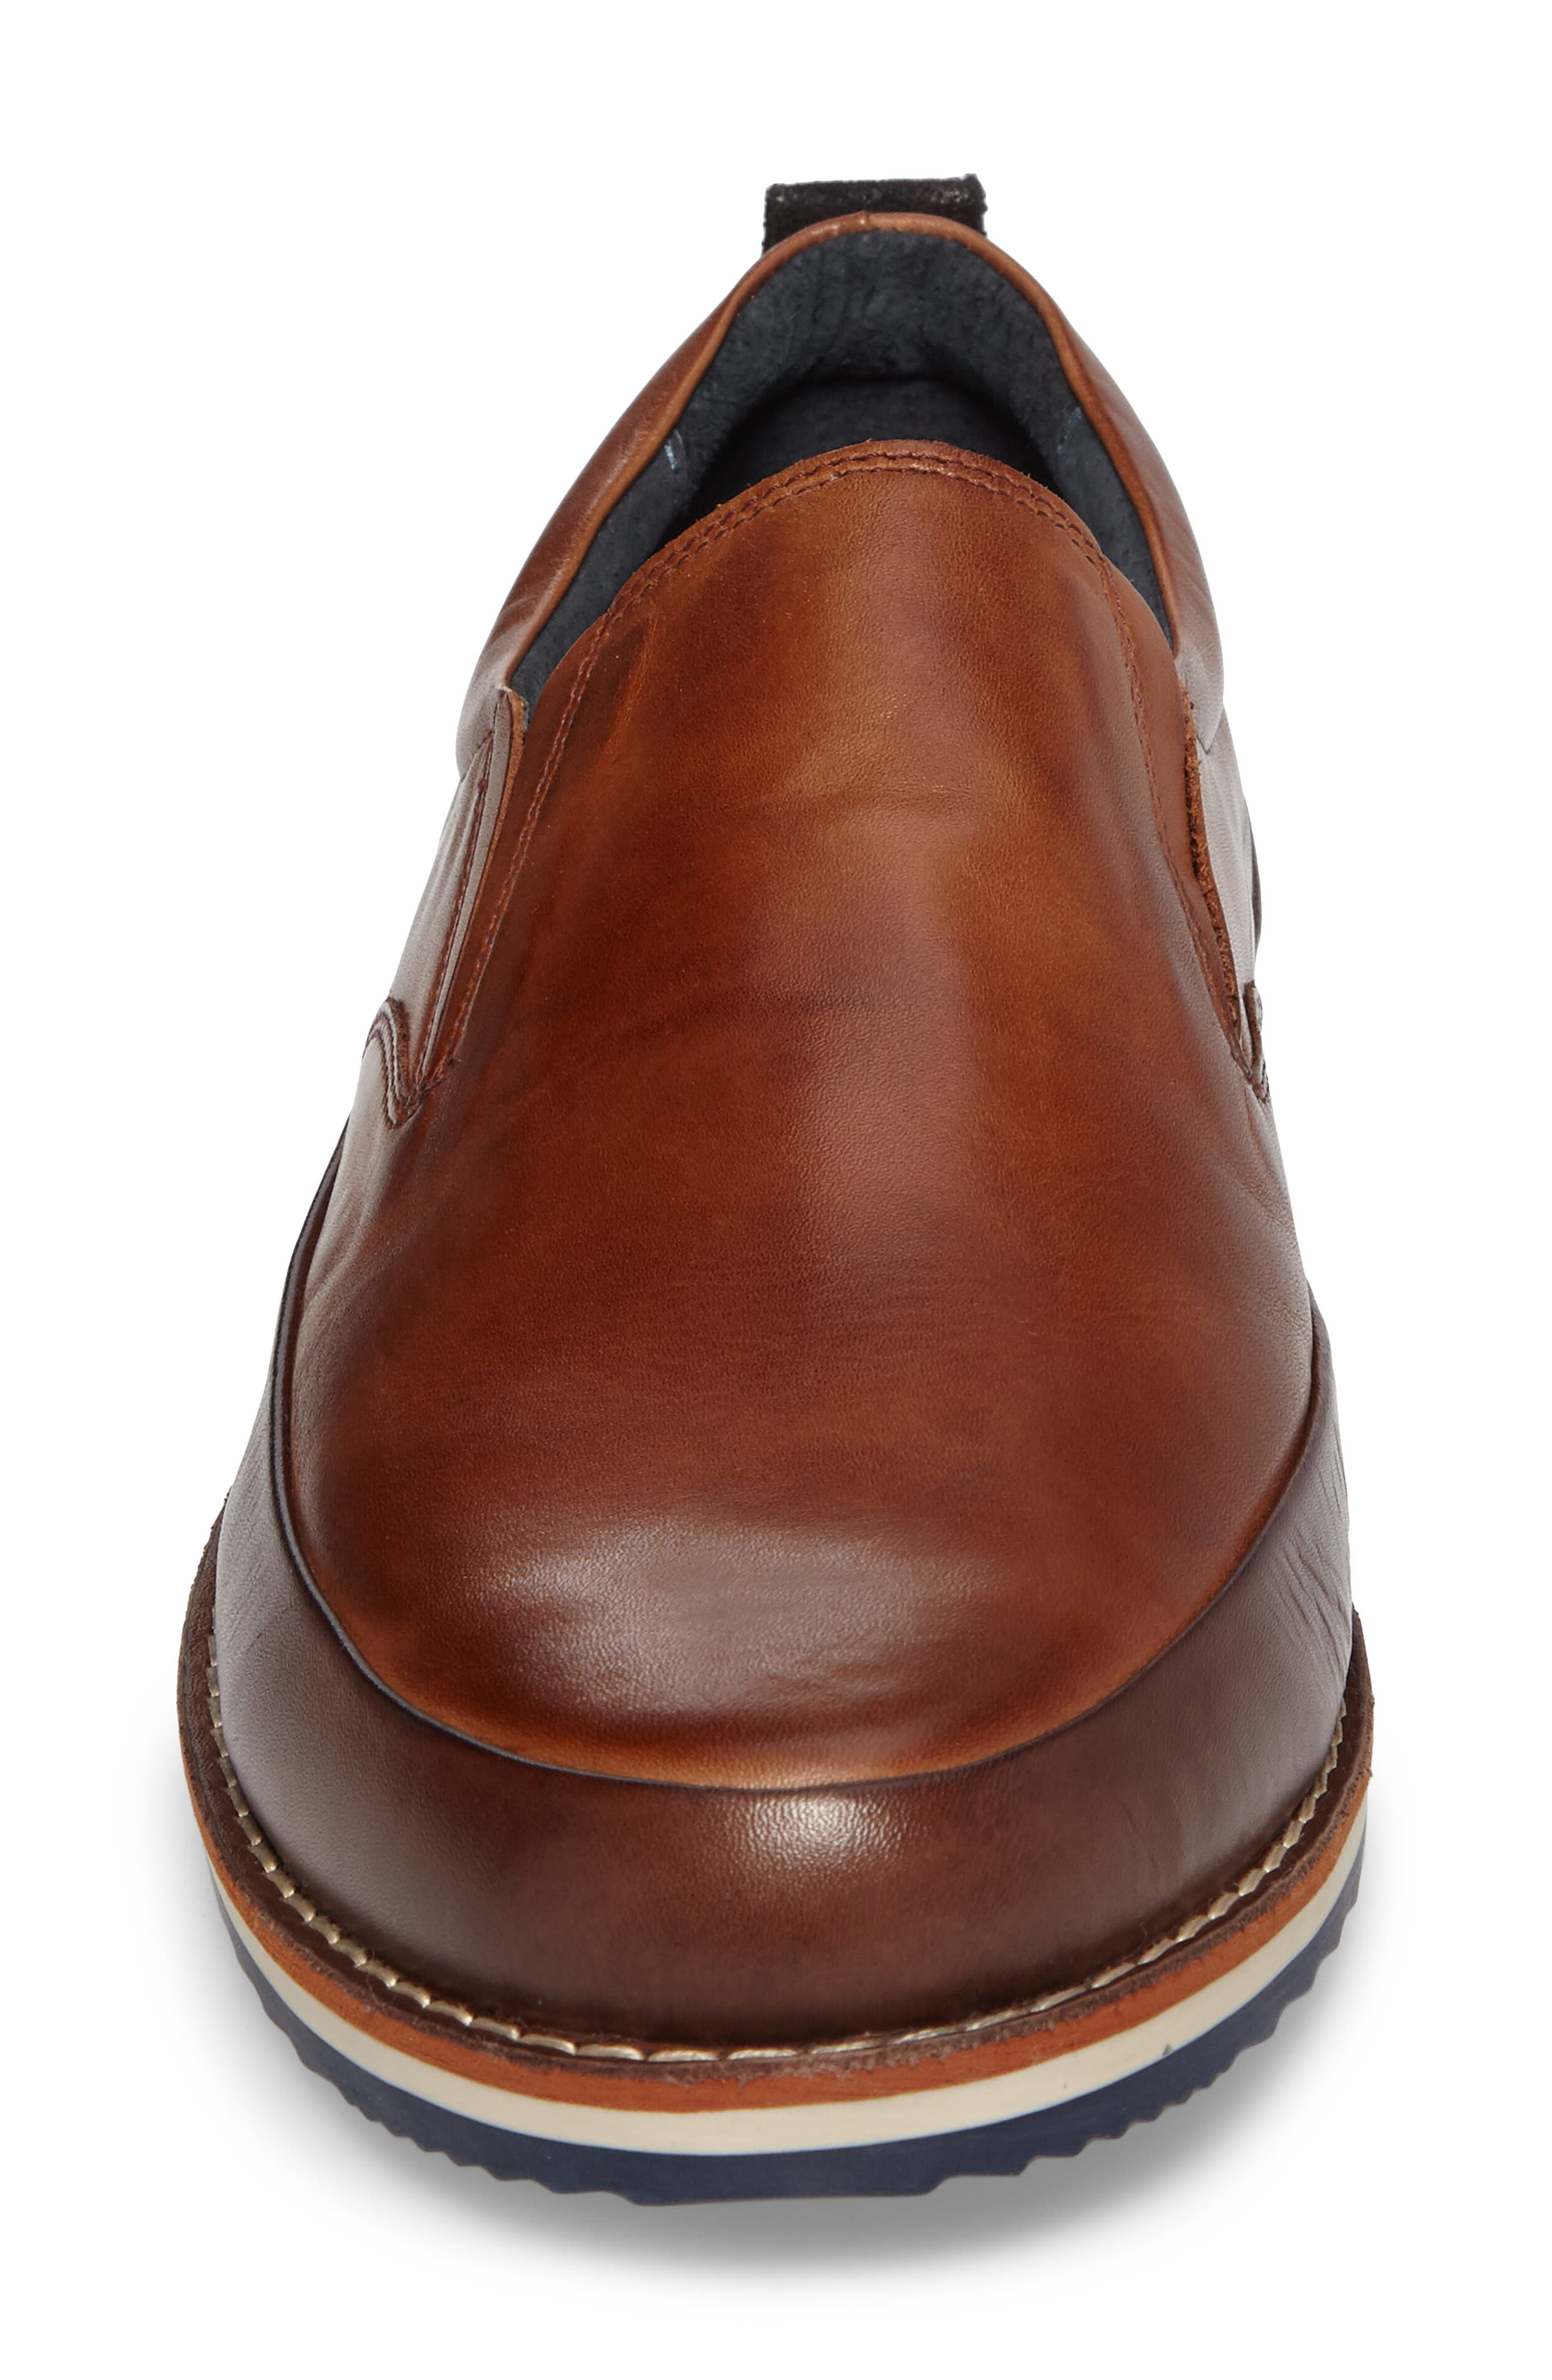 Biarritz Slip-On,                             Alternate thumbnail 4, color,                             Brown Leather